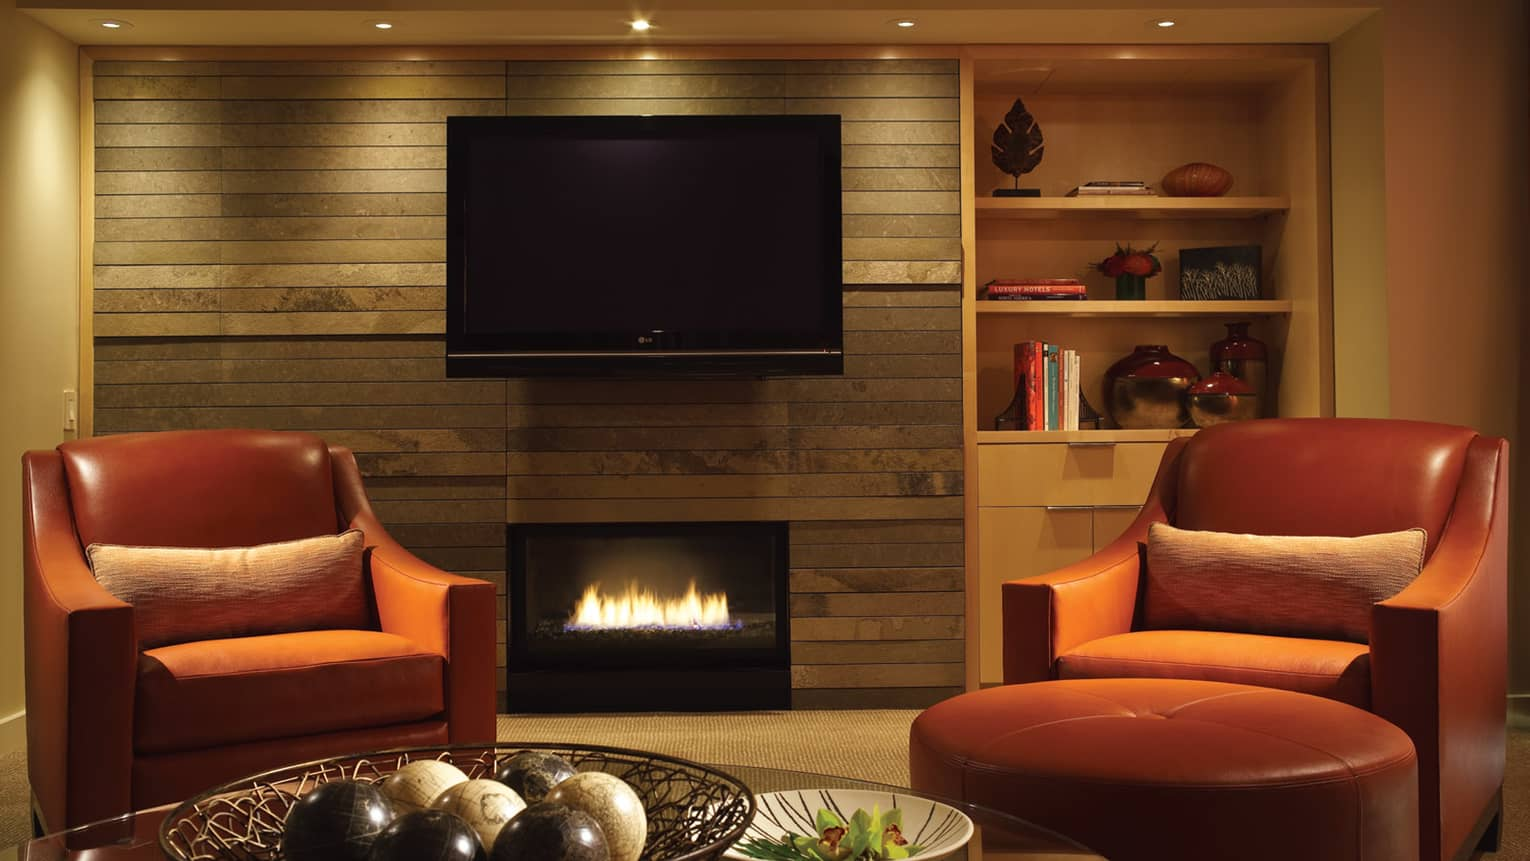 Red armchair beside gas fireplace, TV mounted on wall